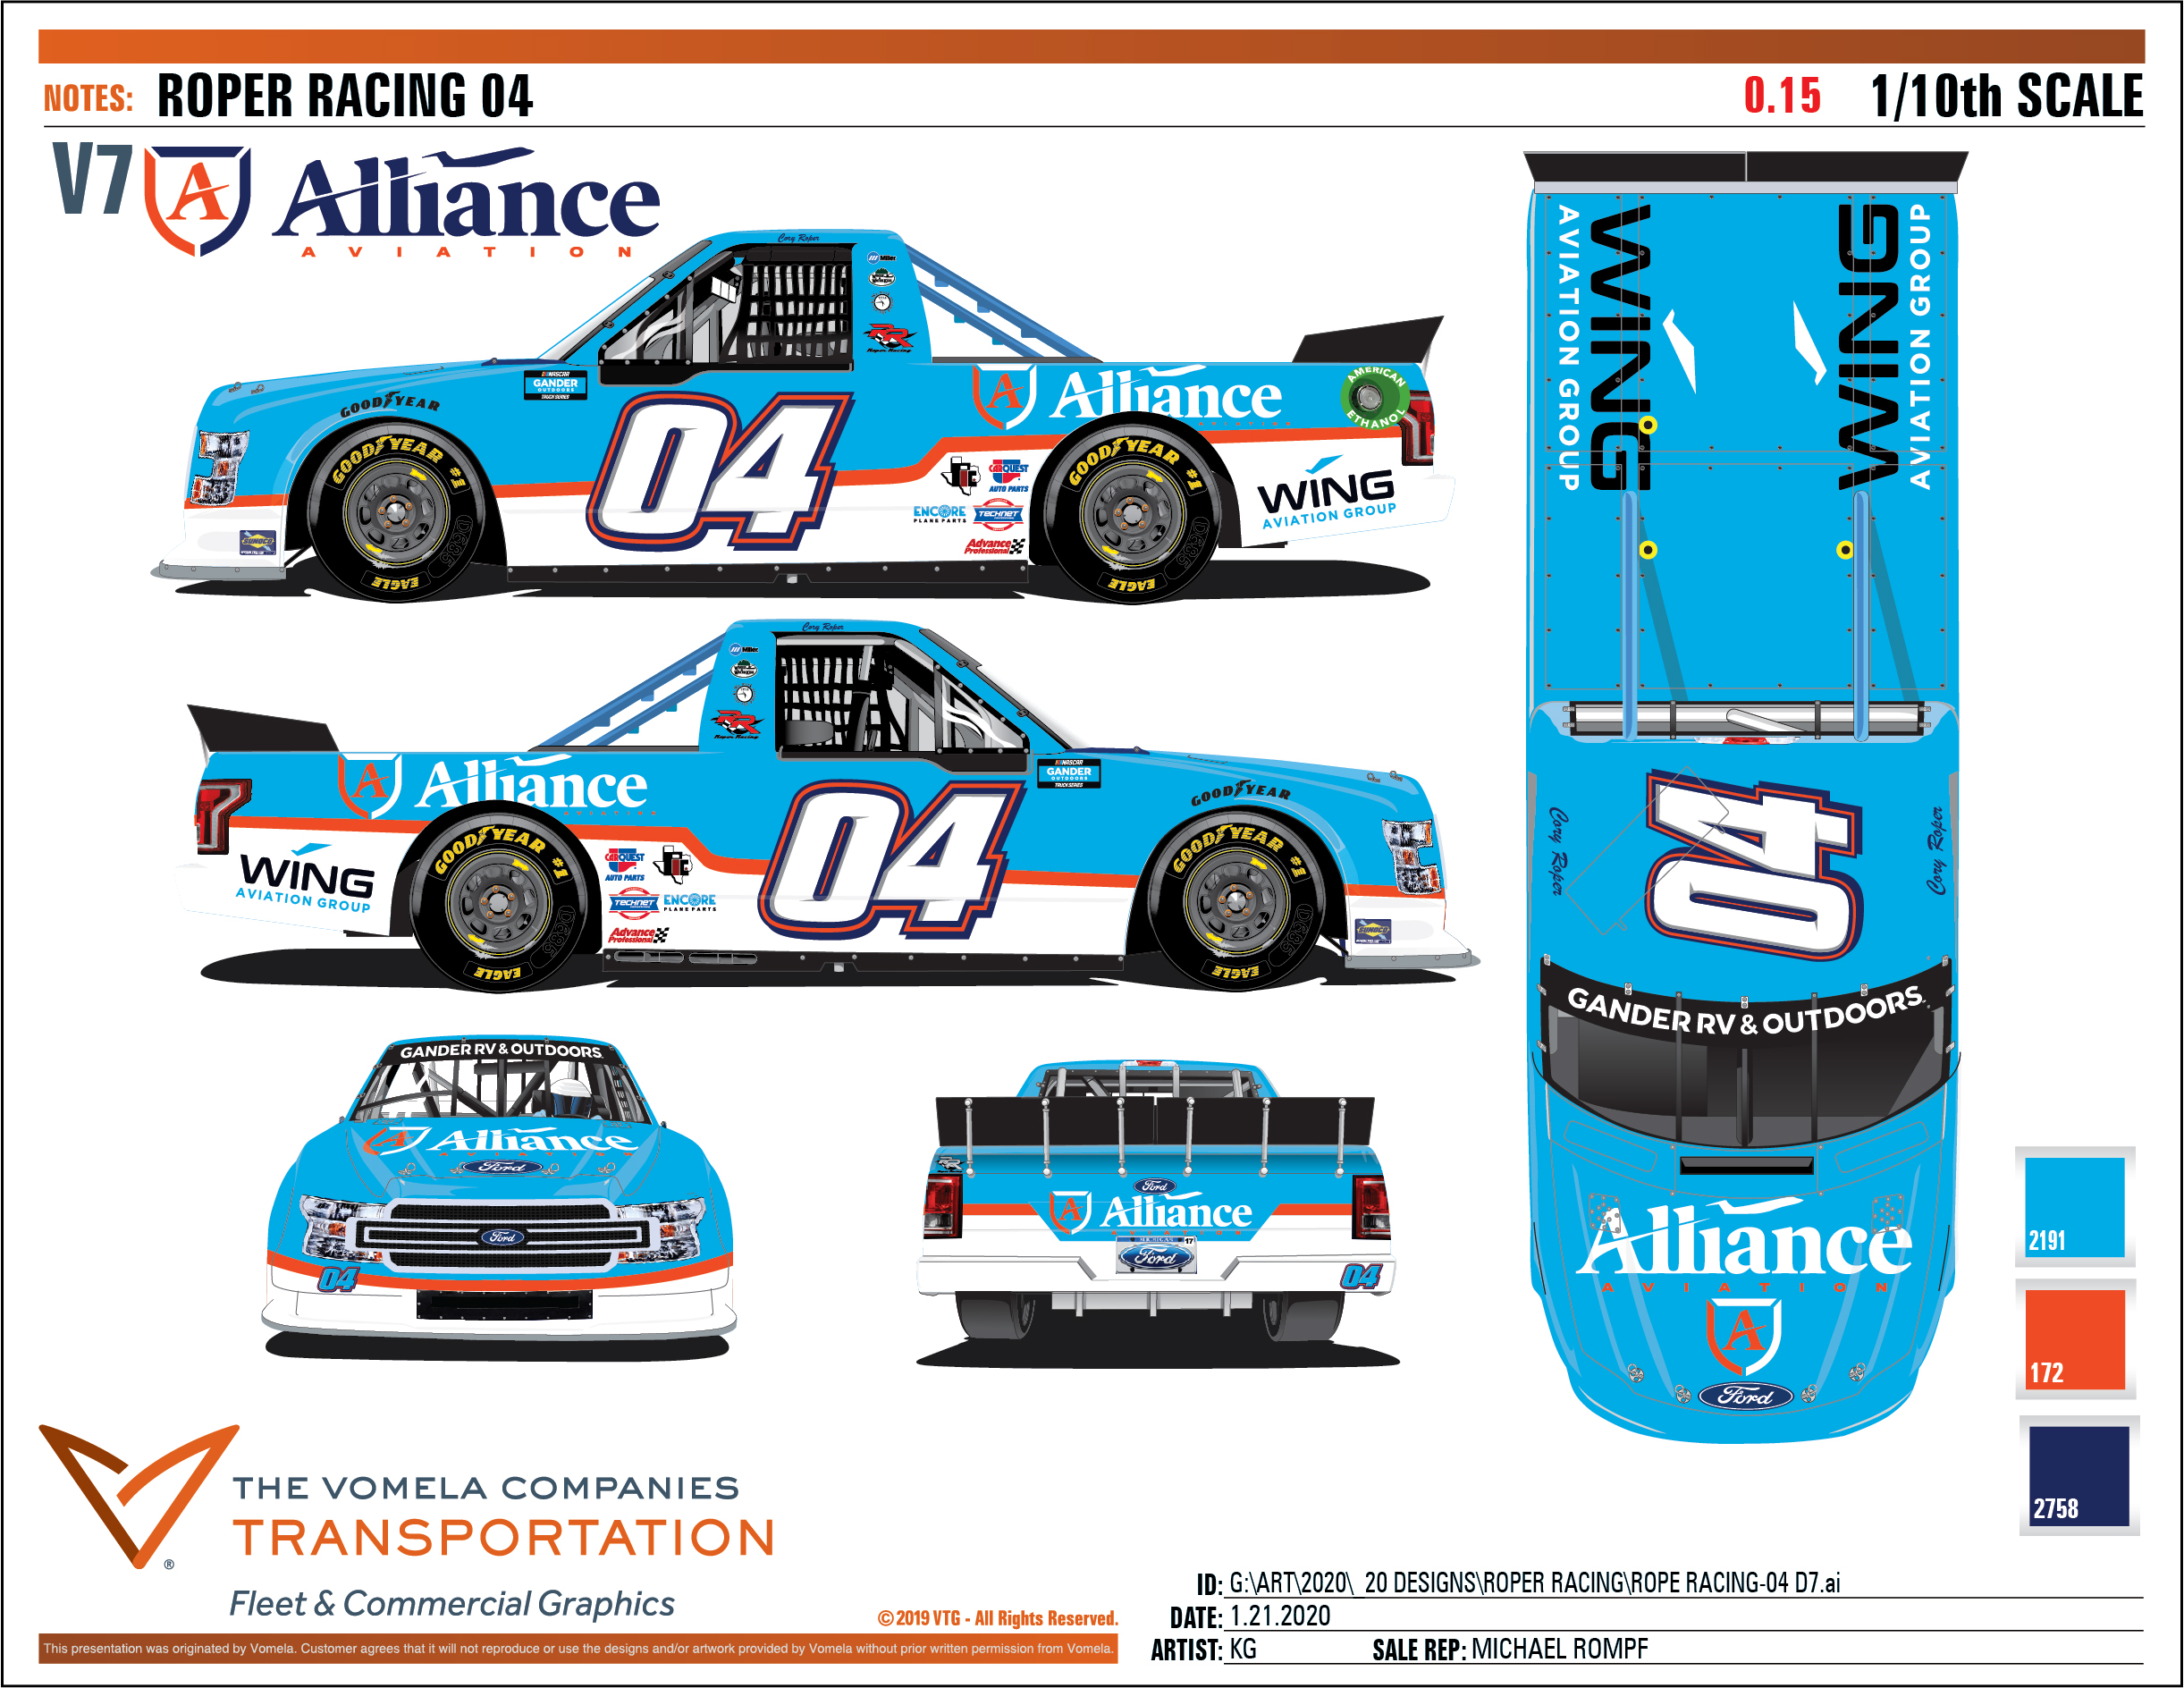 Driver Cory Roper & Roper Racing Team Builds Partnership with Alliance Aviation and its family of brands for Daytona NextEra Energy 250!